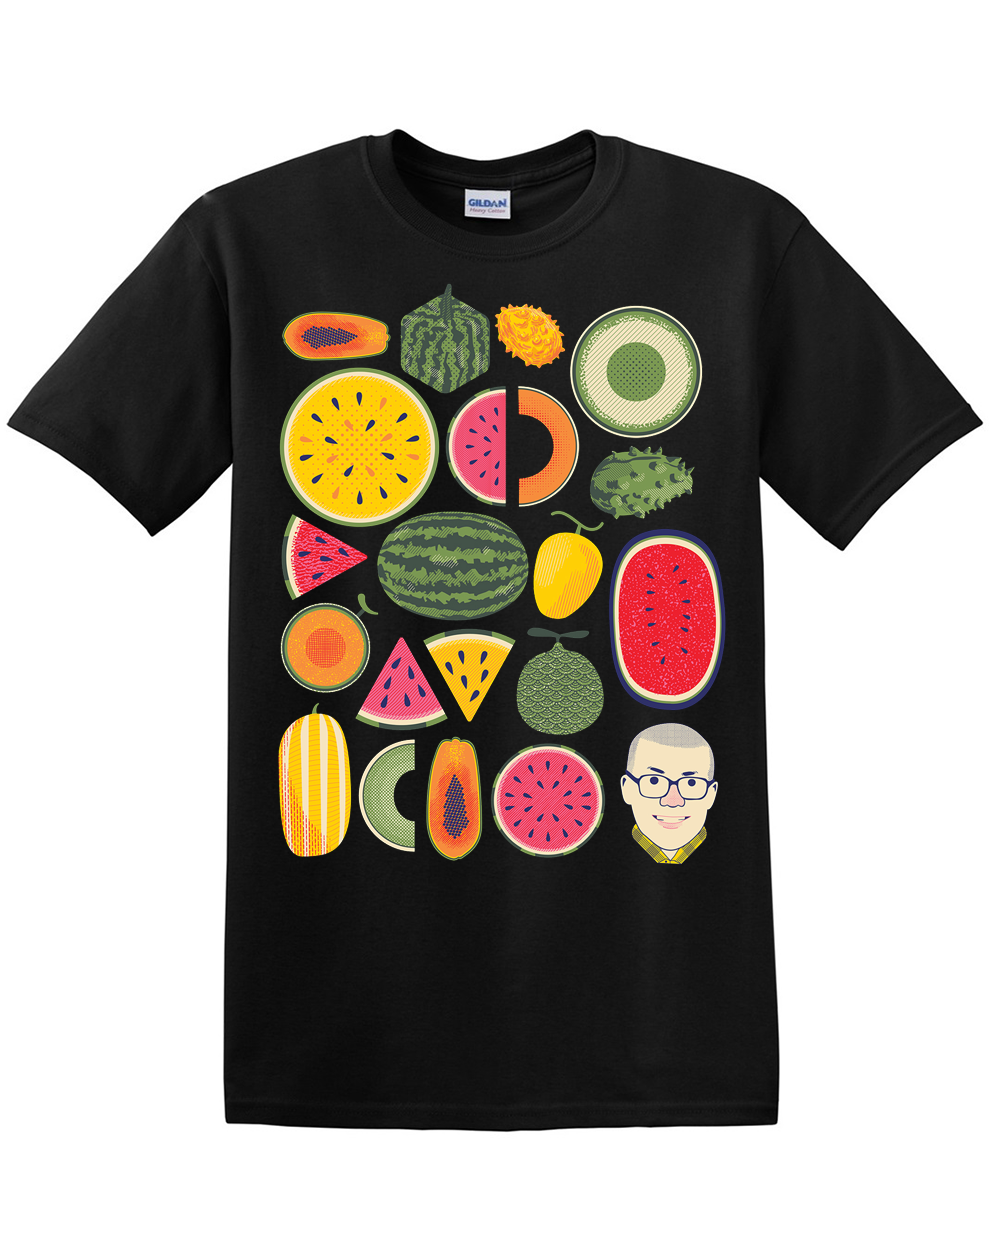 melon-shirt_image